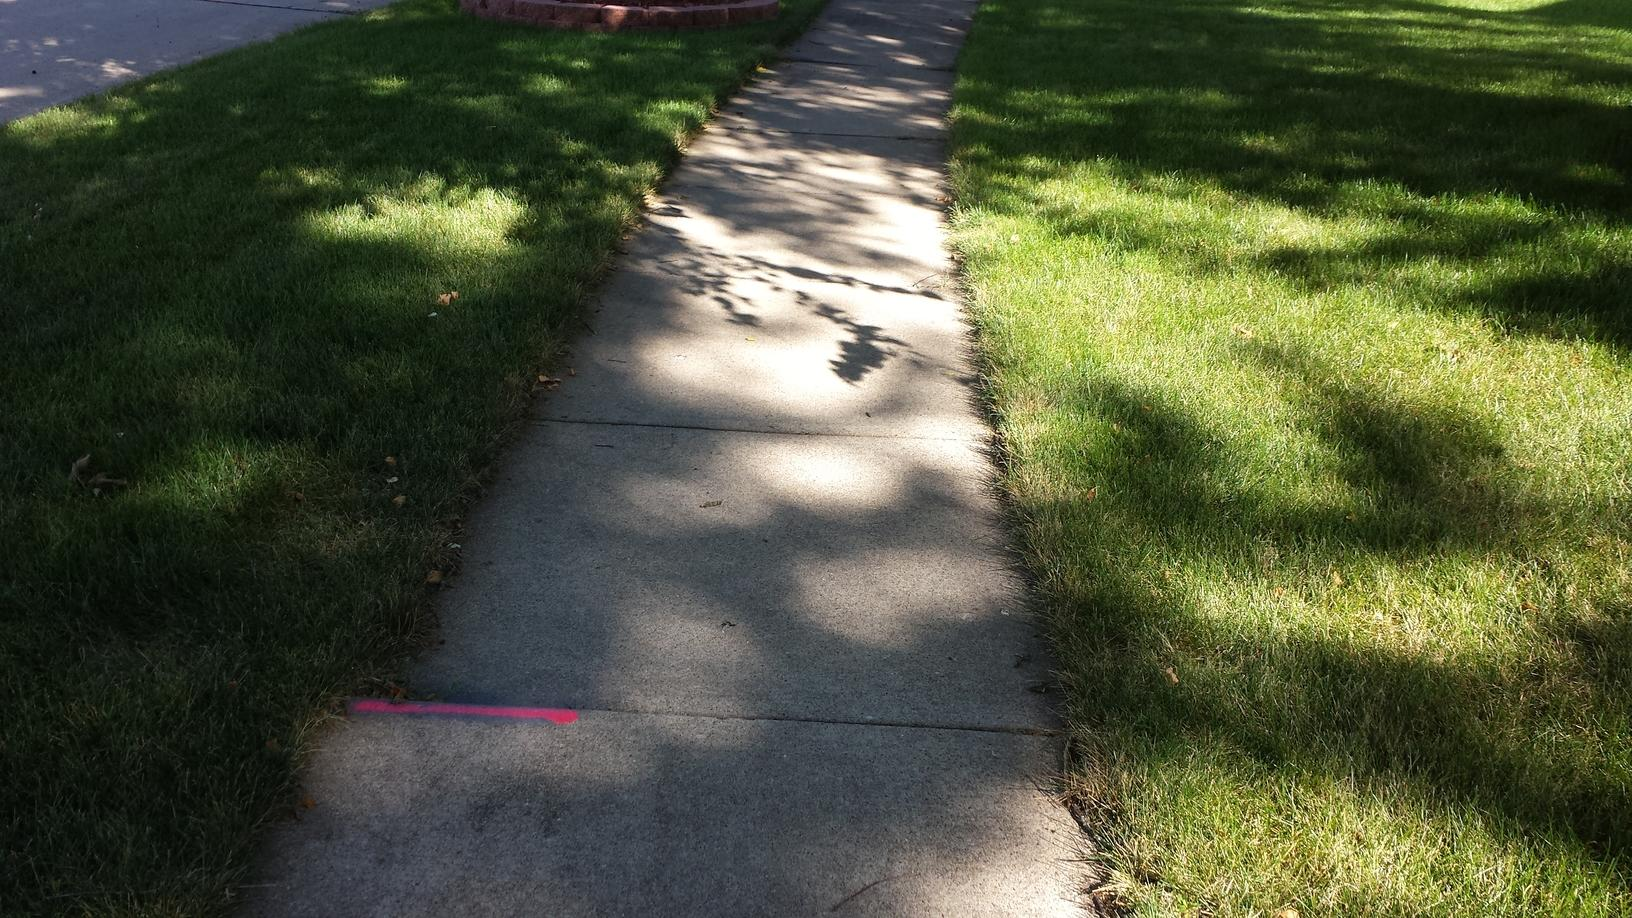 The sidewalk before it is repaired and fixed.